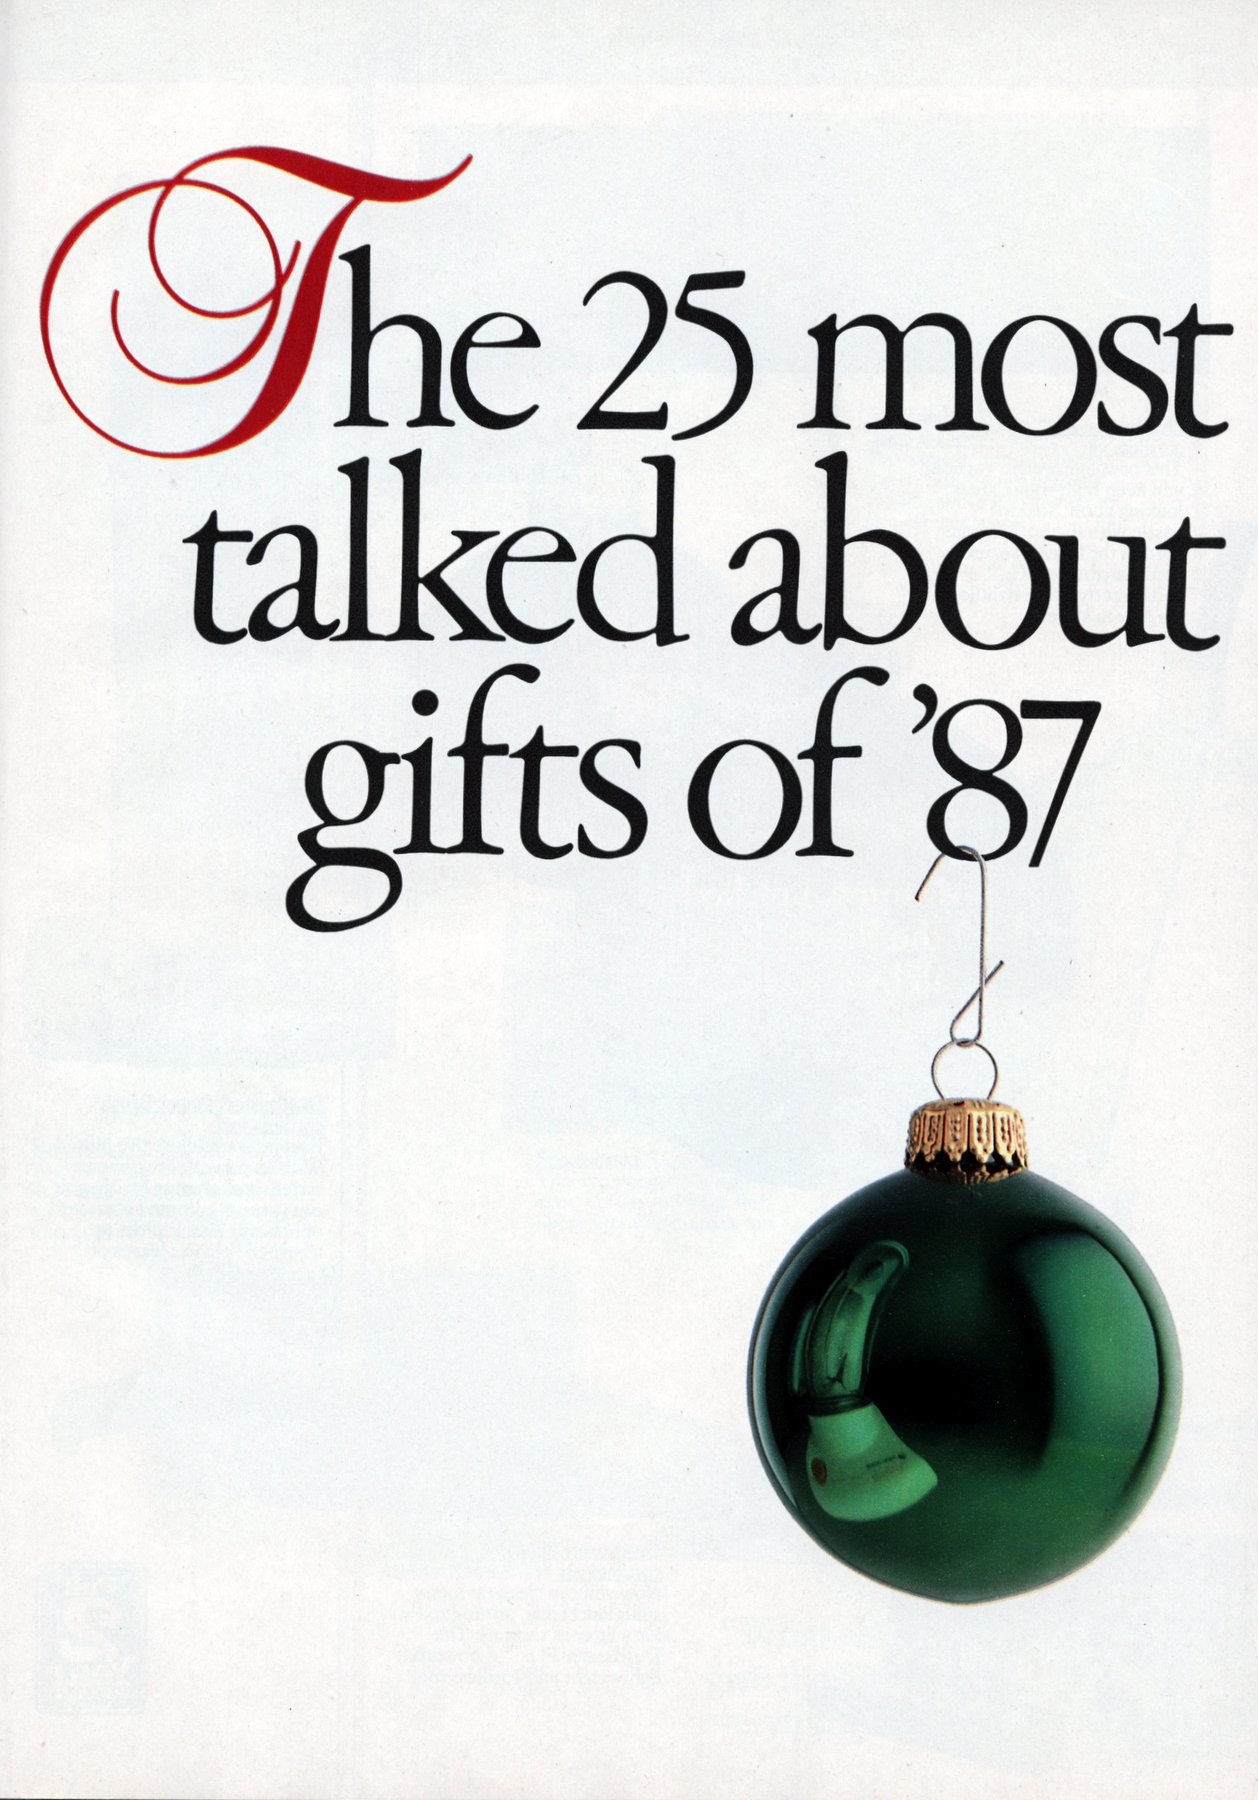 Retro Black and Decker The 25 most talked about gifts of 87